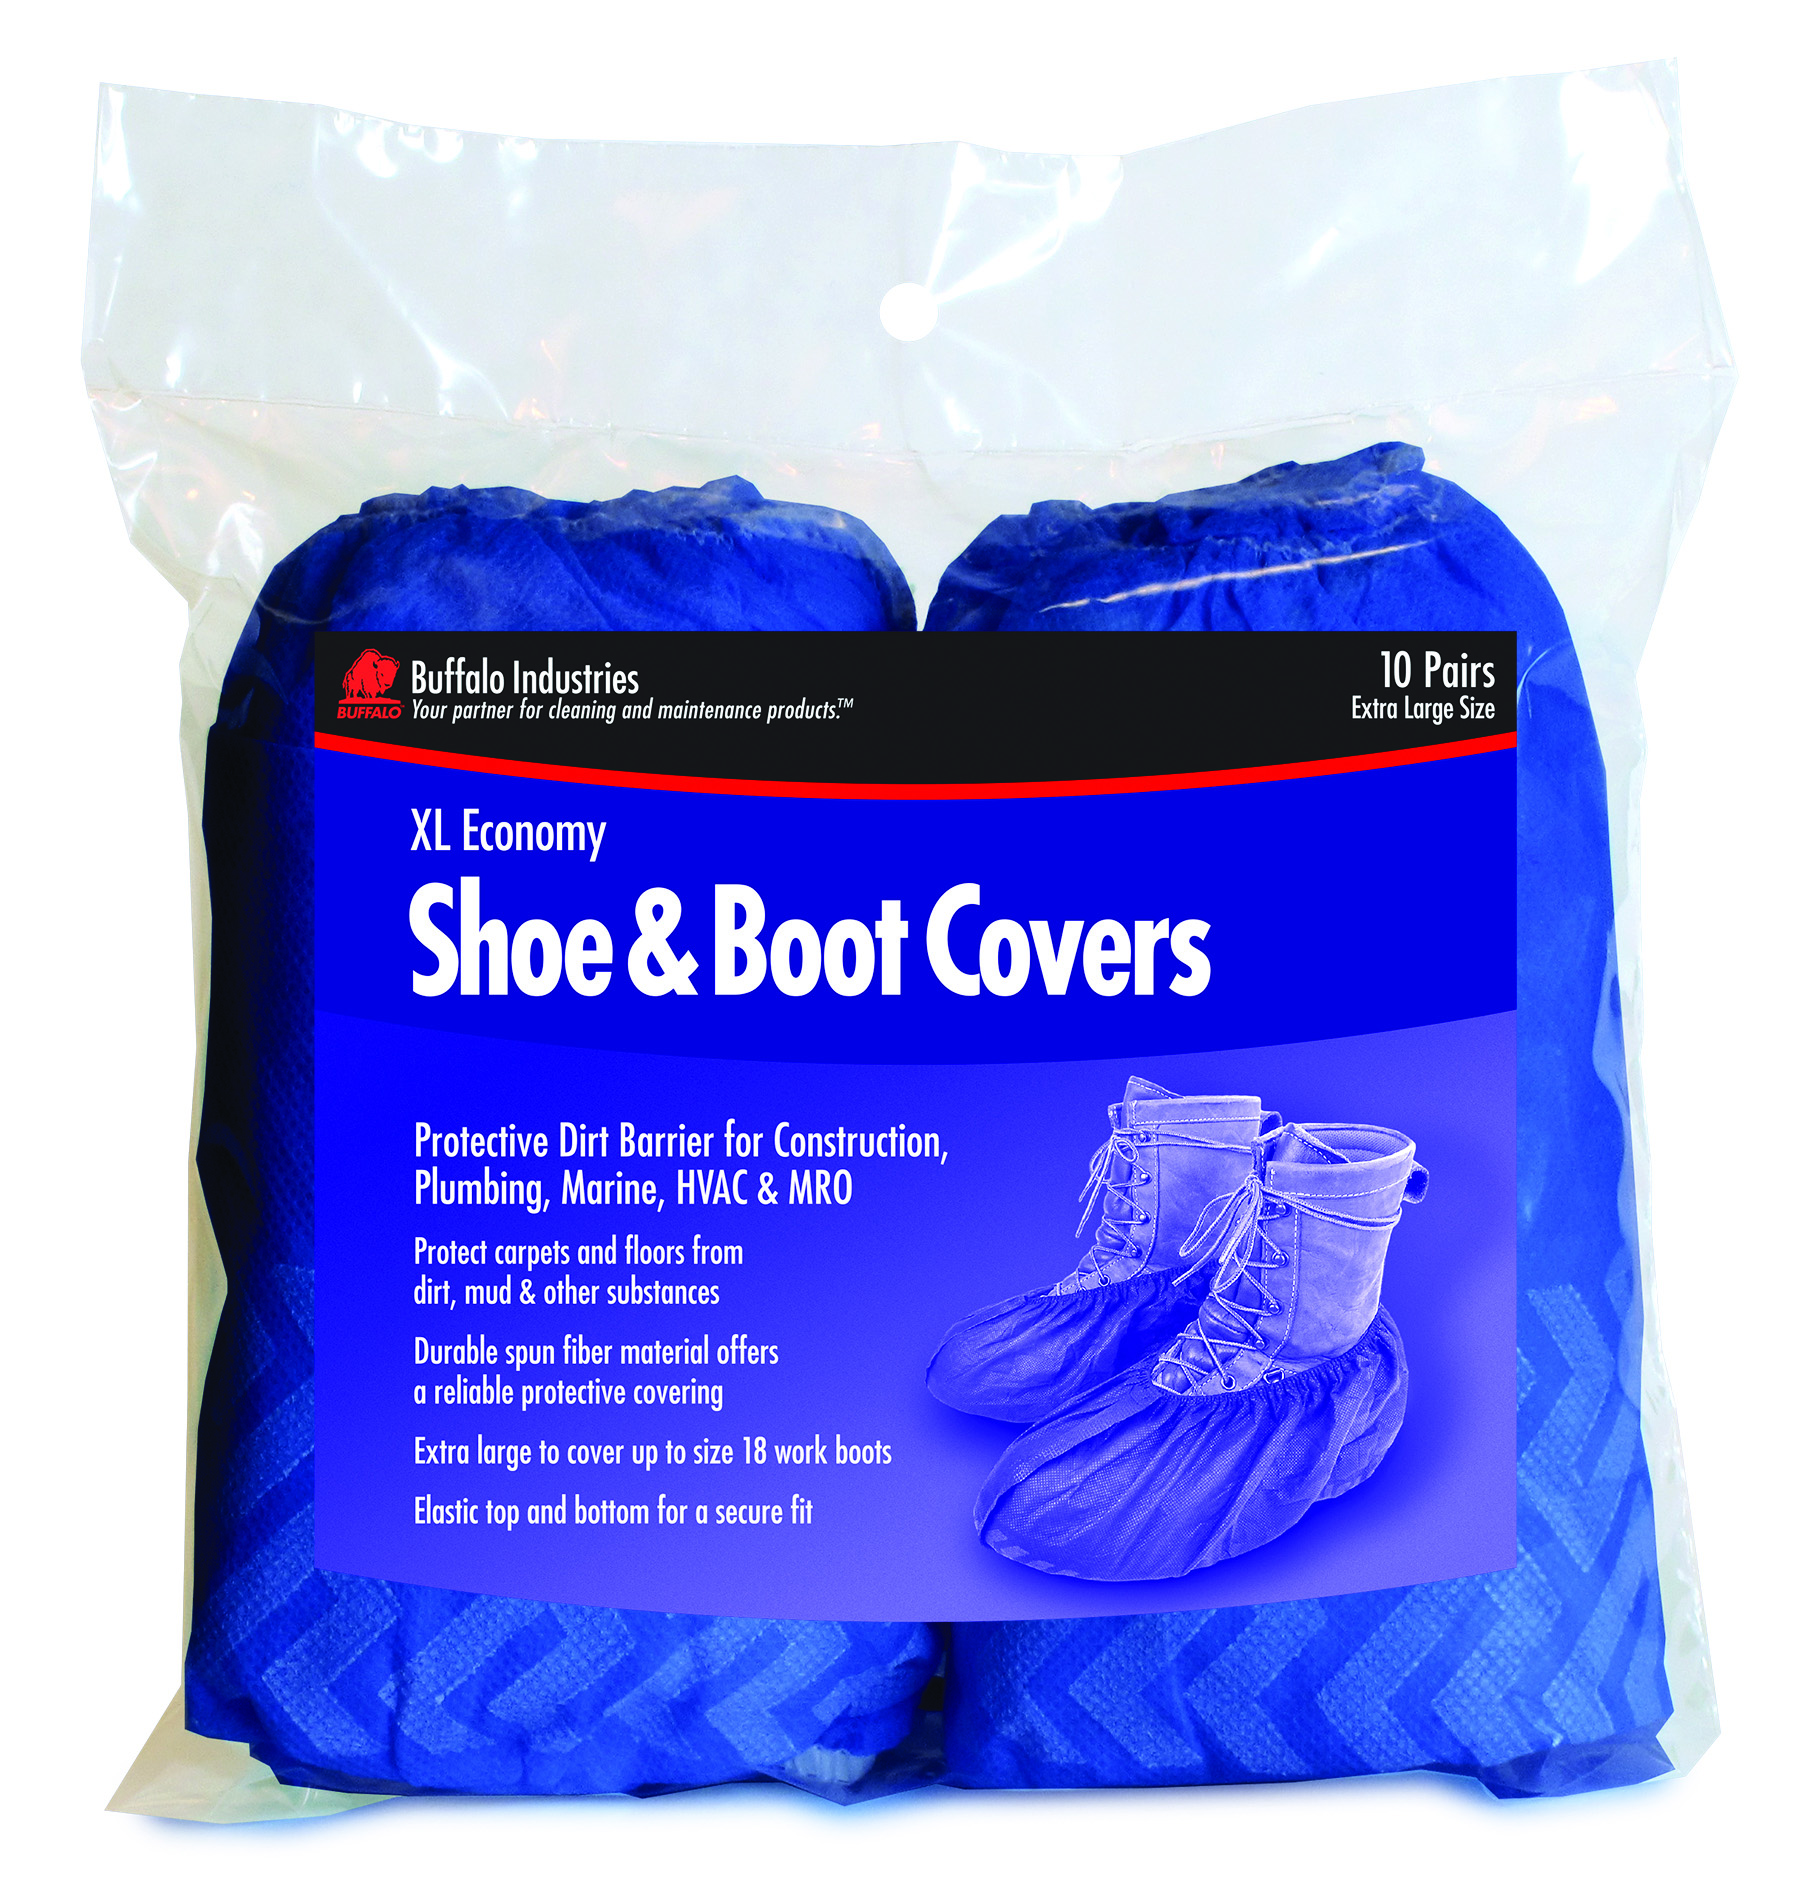 xl economy shoe and boot covers